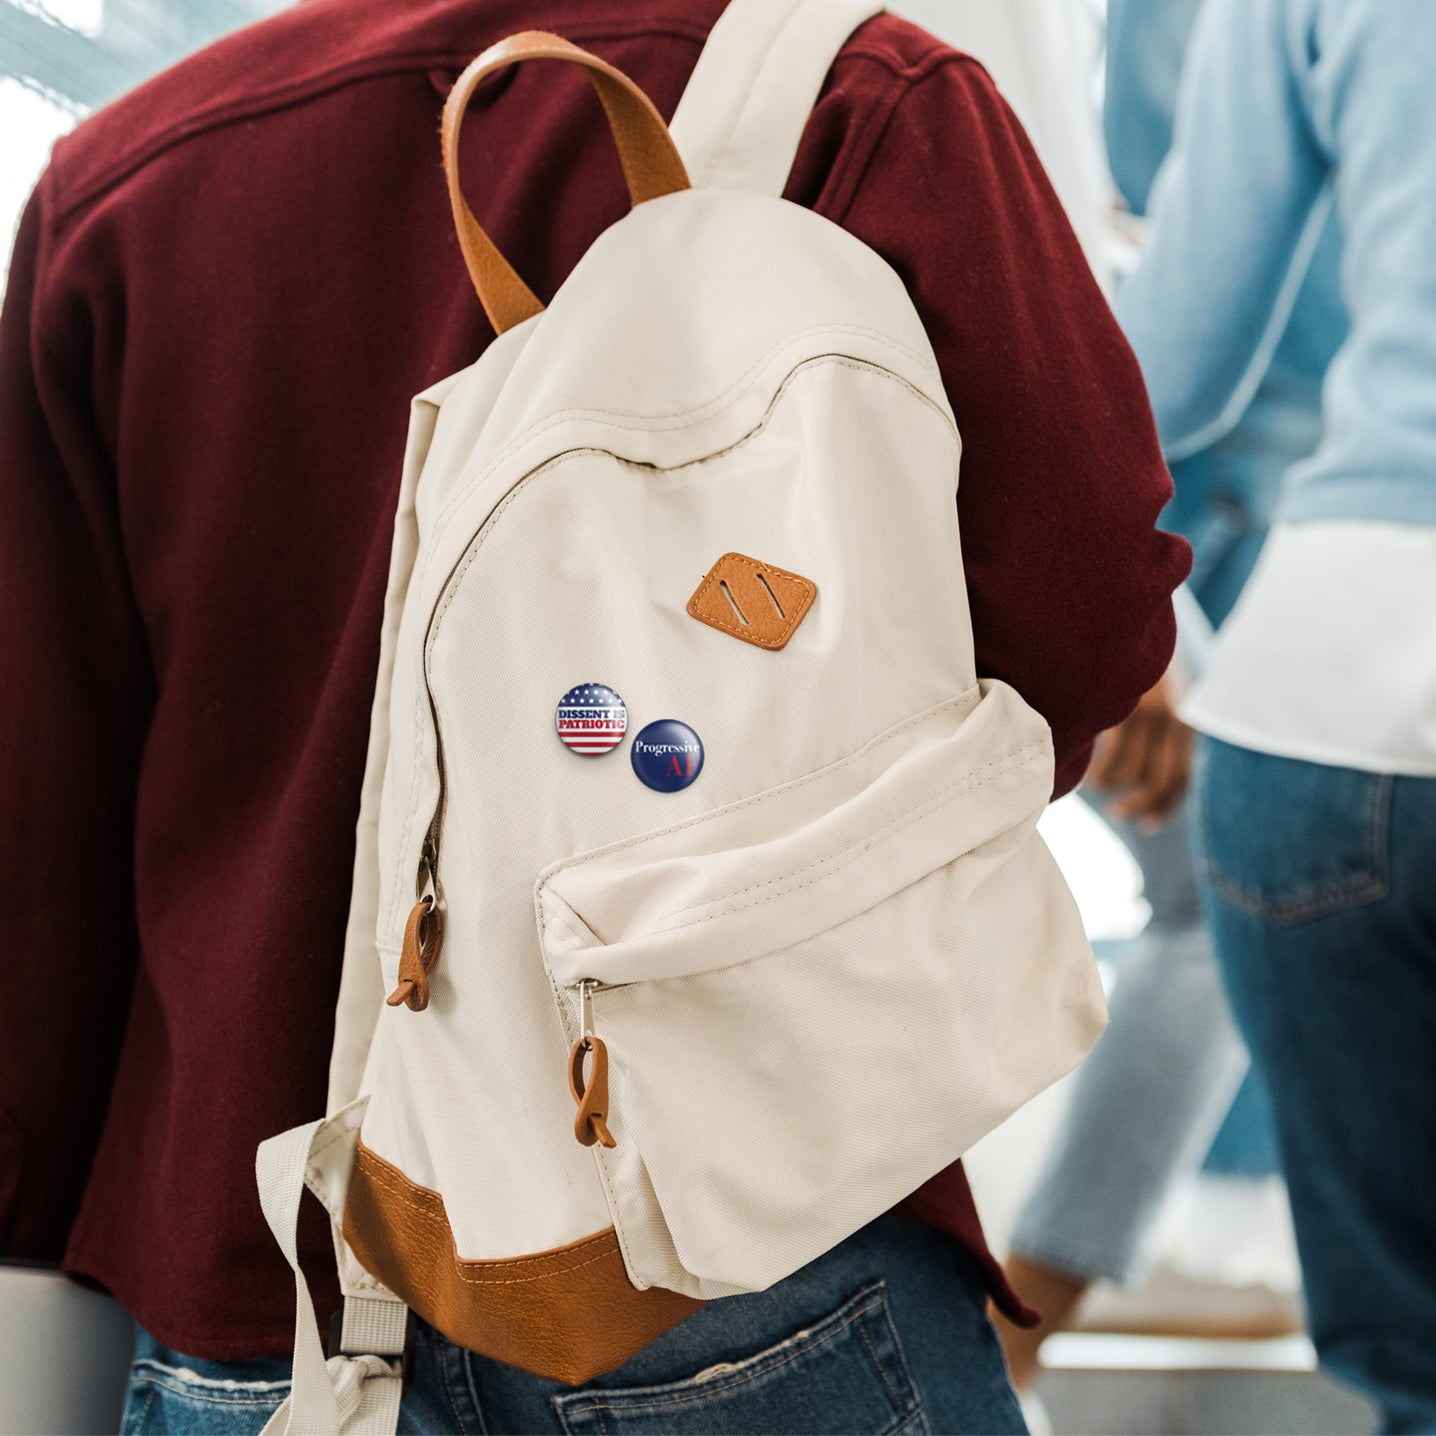 dissent is patriotic buttons on knapsack